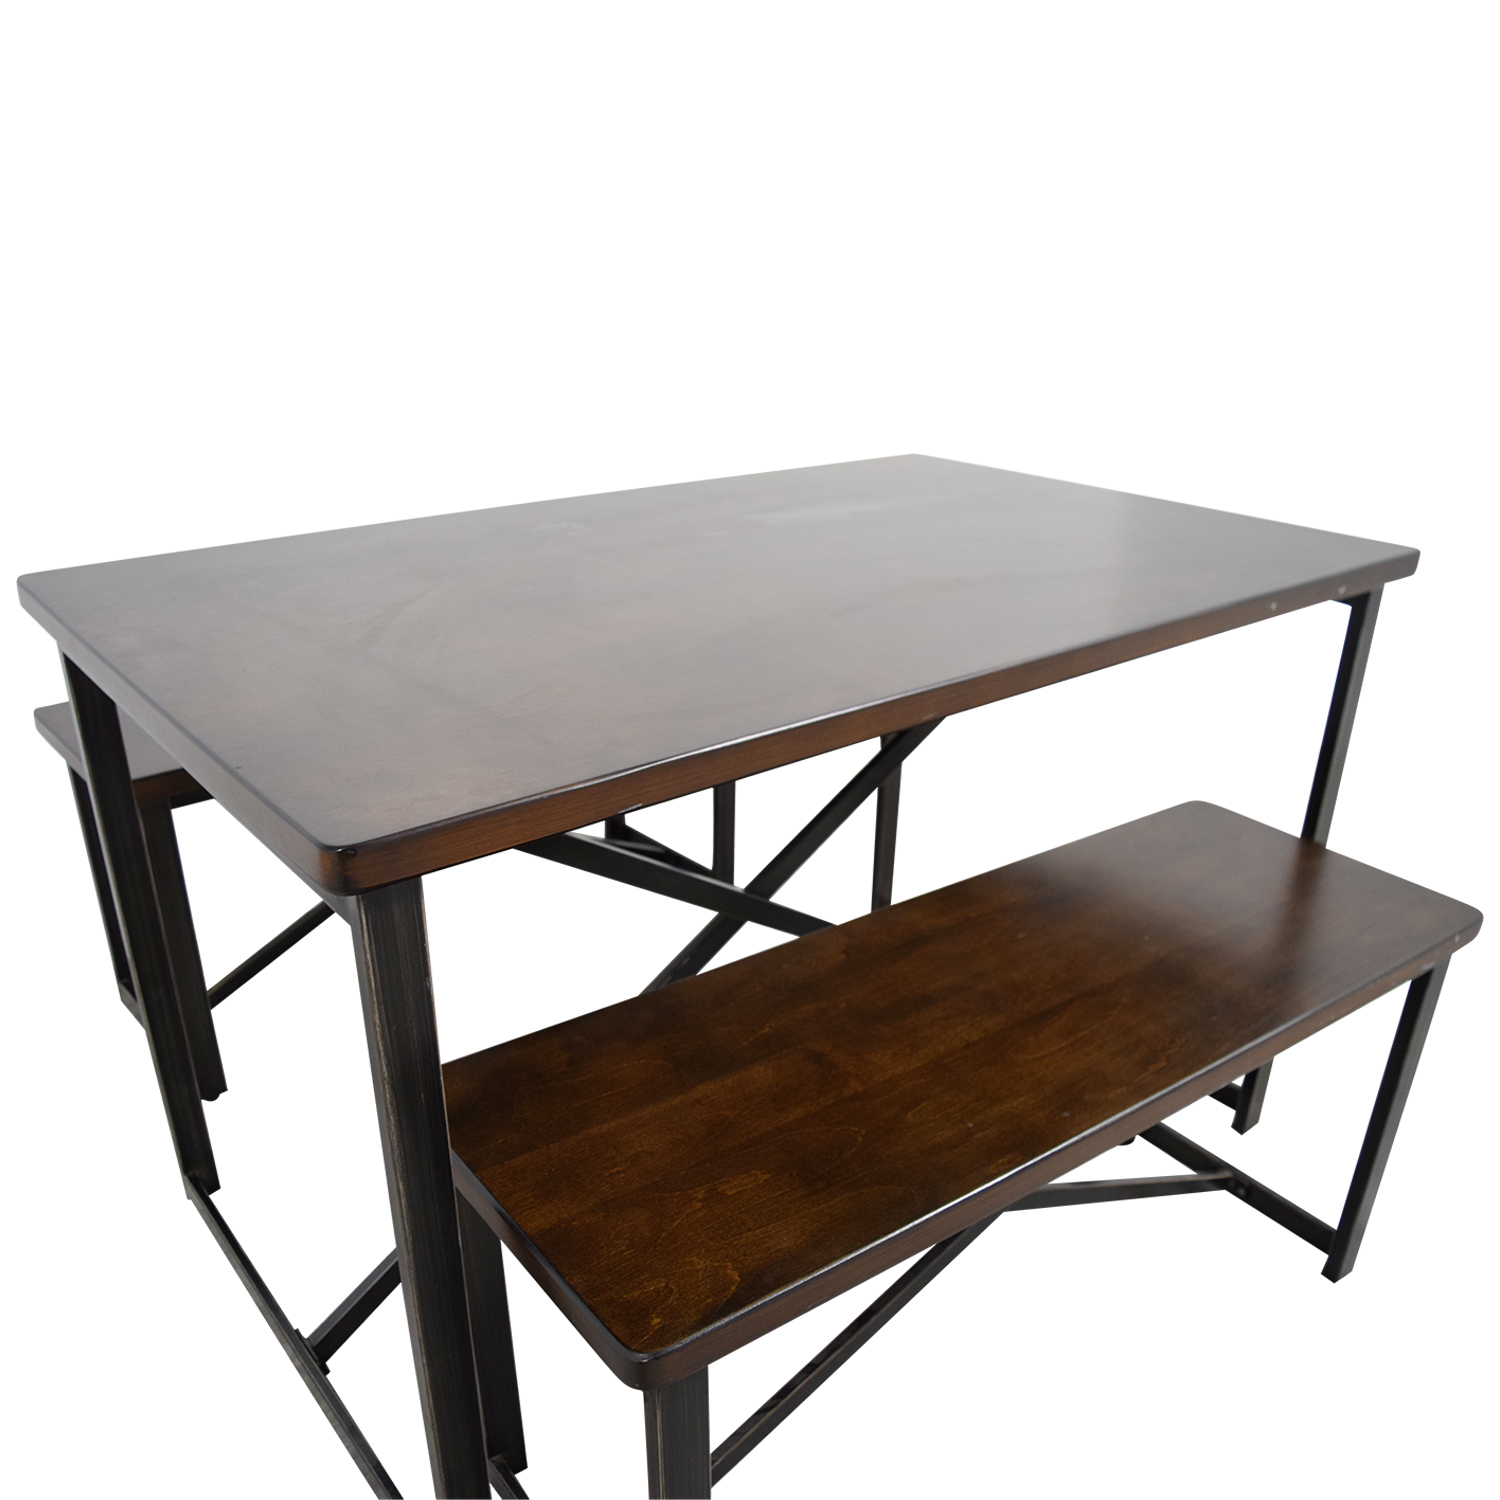 Wooden Dining Tables And Benches: Ashley Furniture Ashley Furniture Wood And Metal